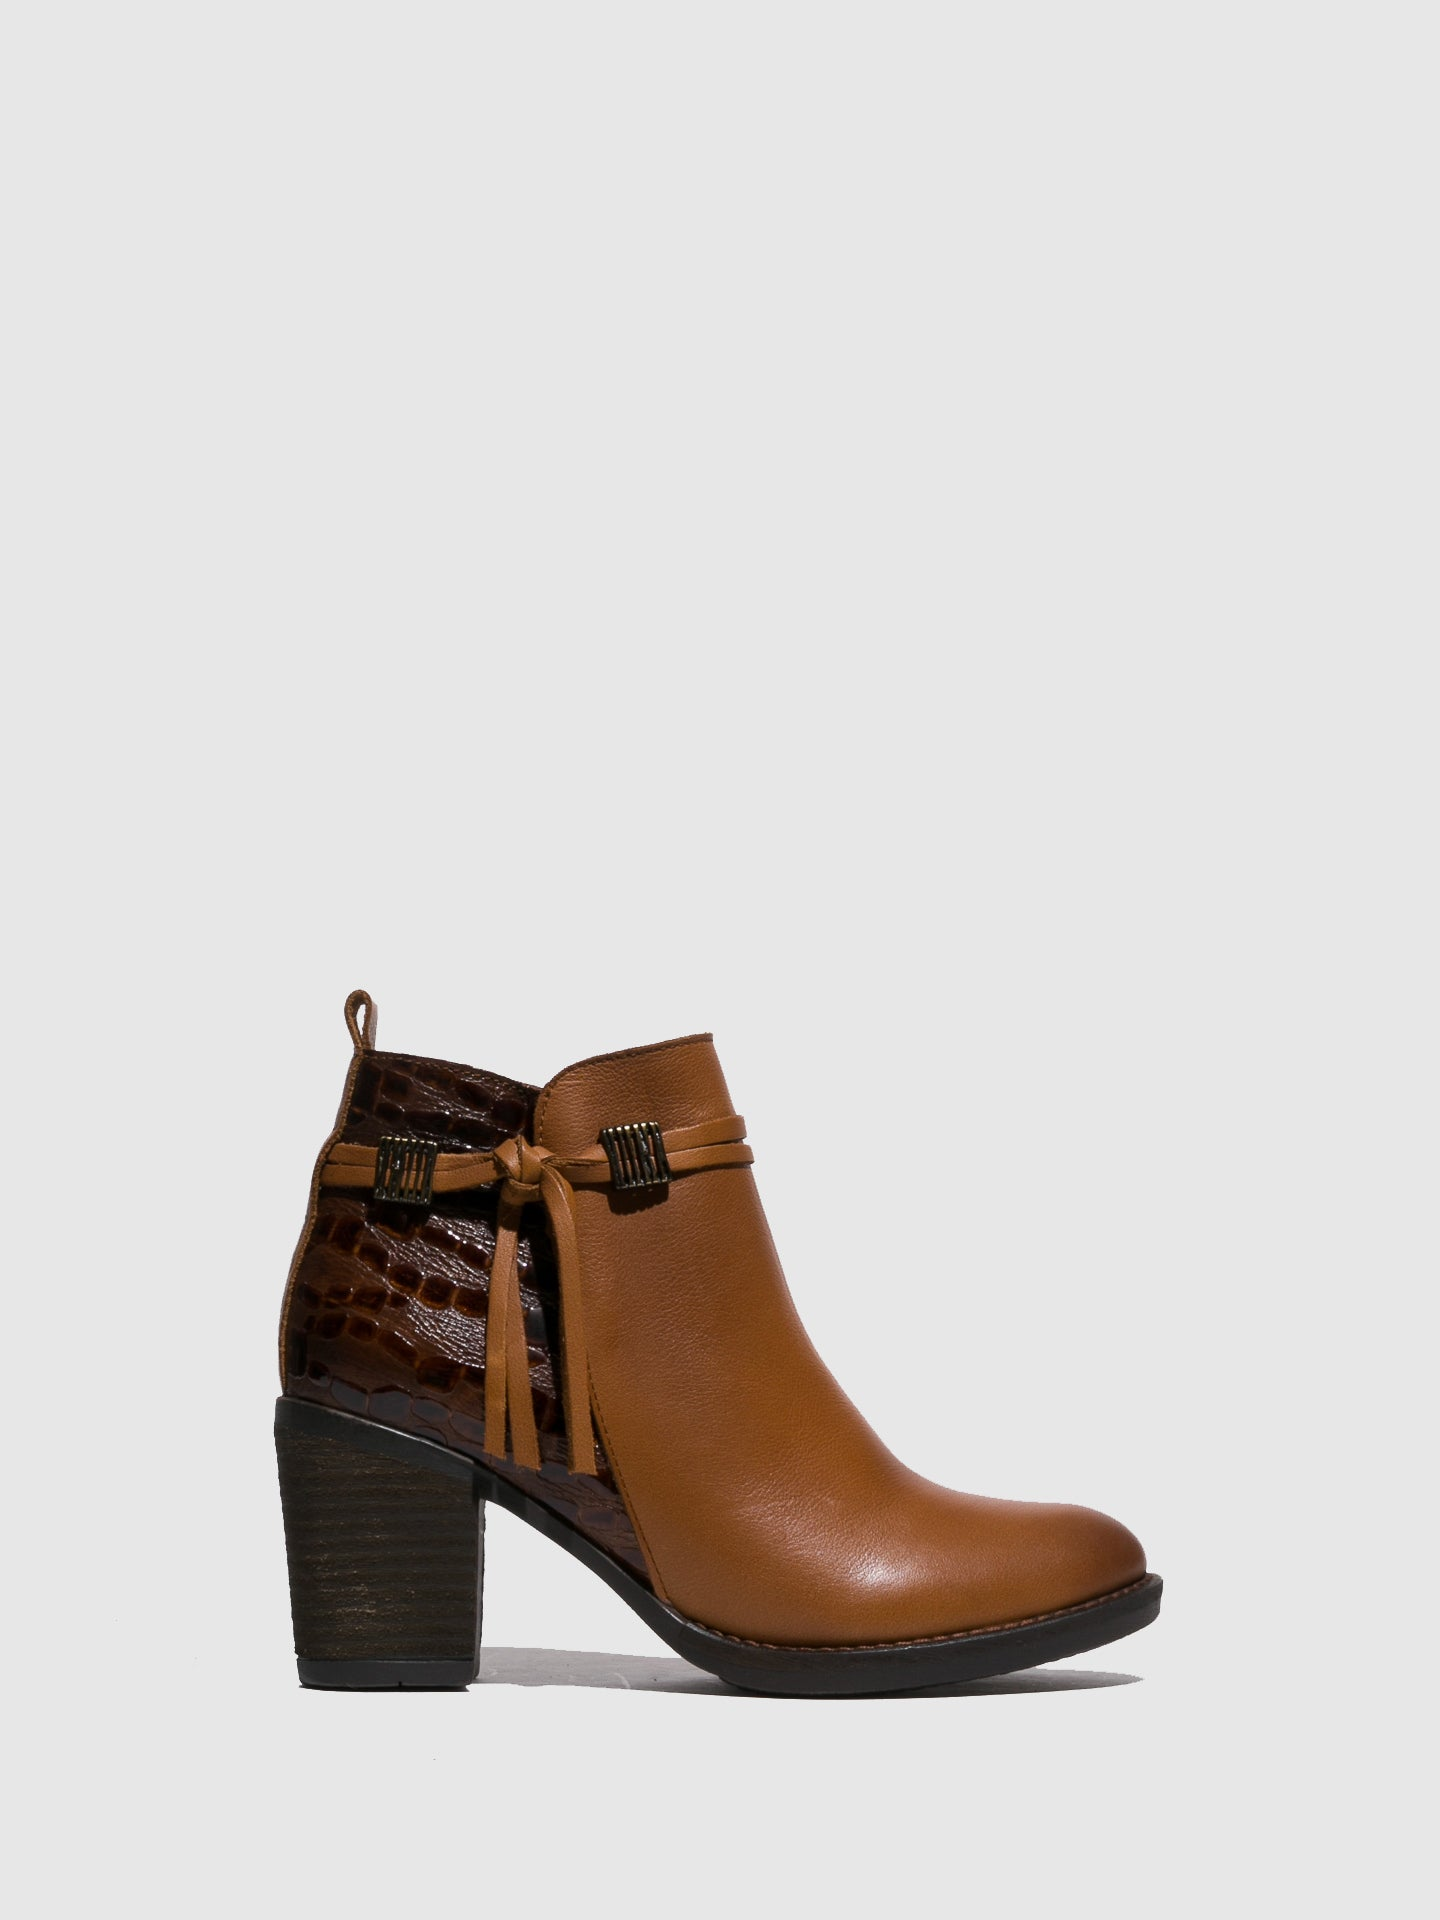 Foreva Camel Round Toe Ankle Boots